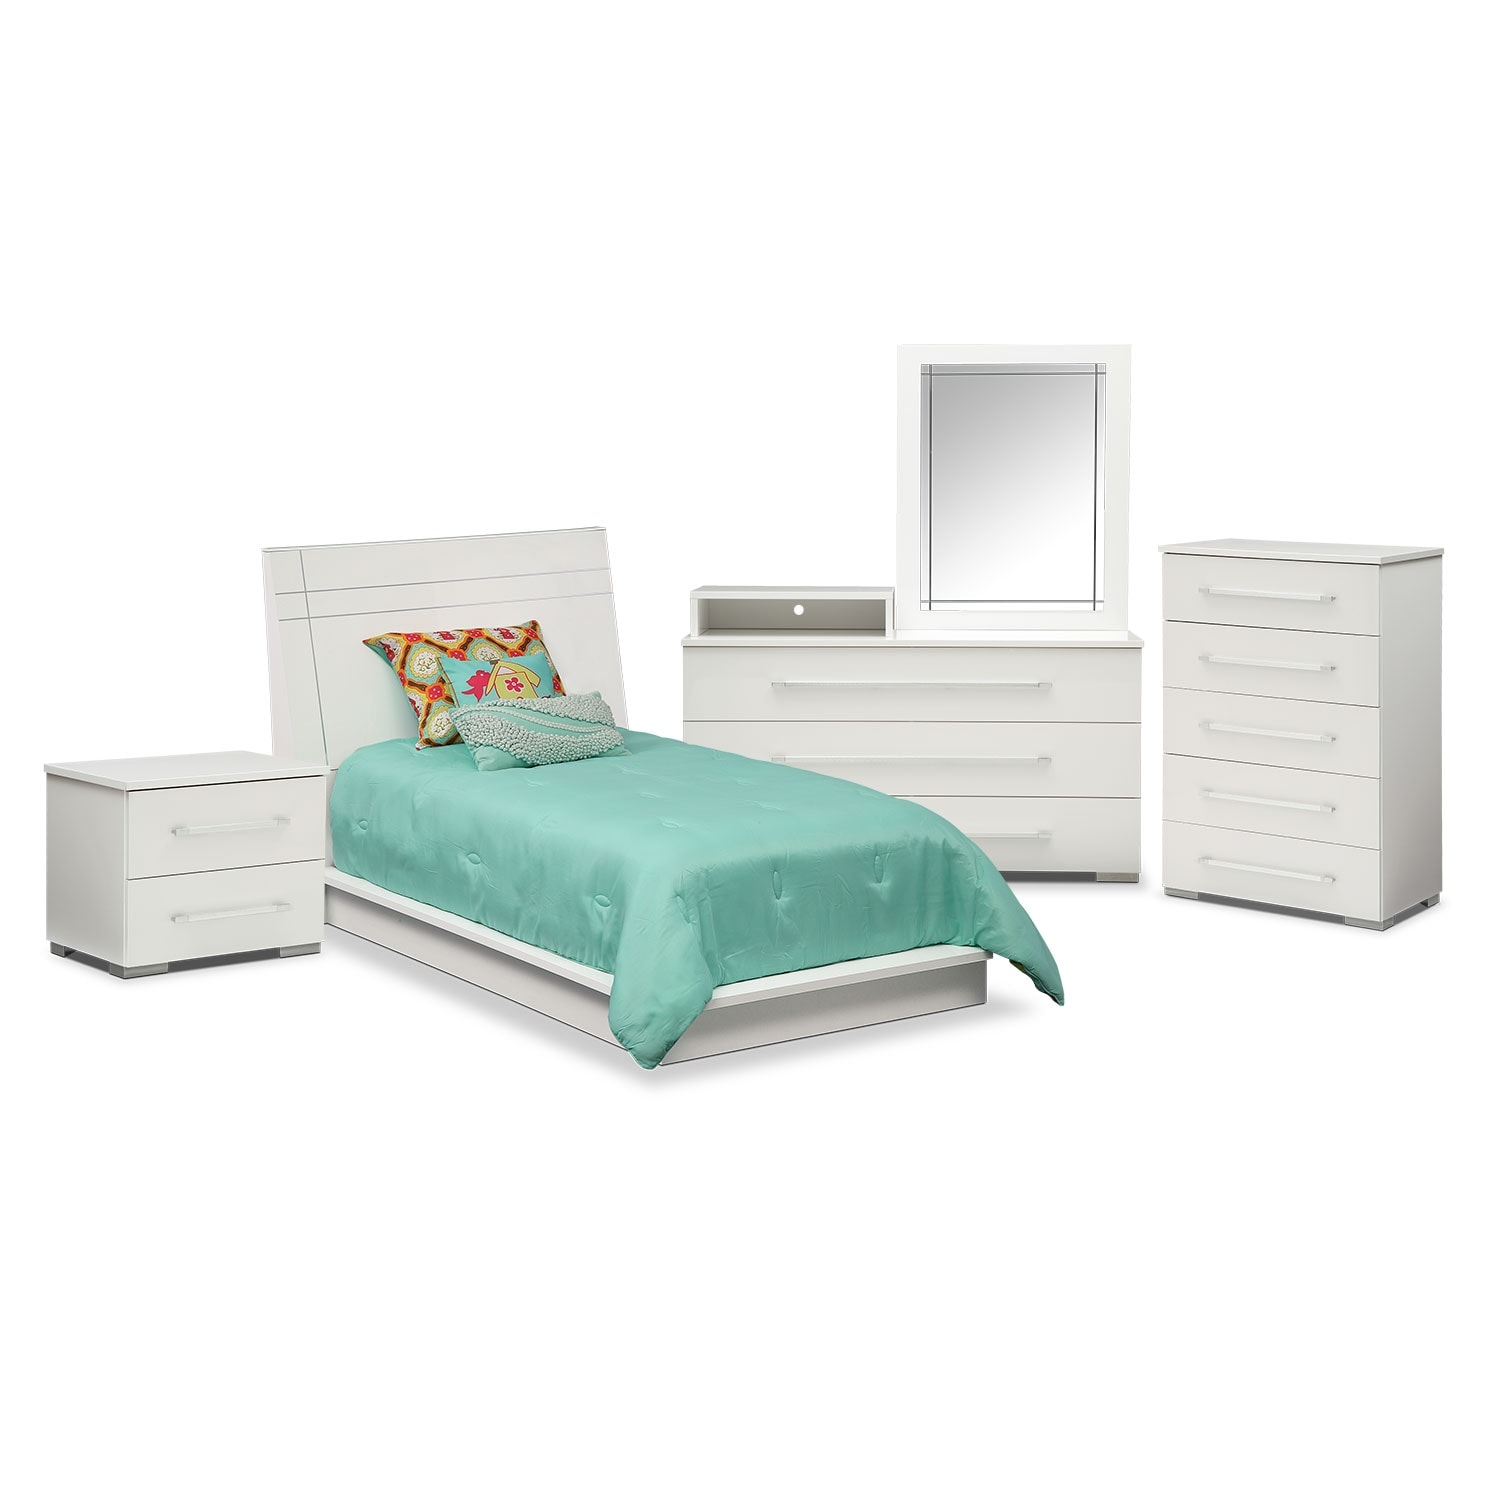 Bedroom Furniture - Dimora 7-Piece Twin Panel Bedroom Set with Media Dresser - White